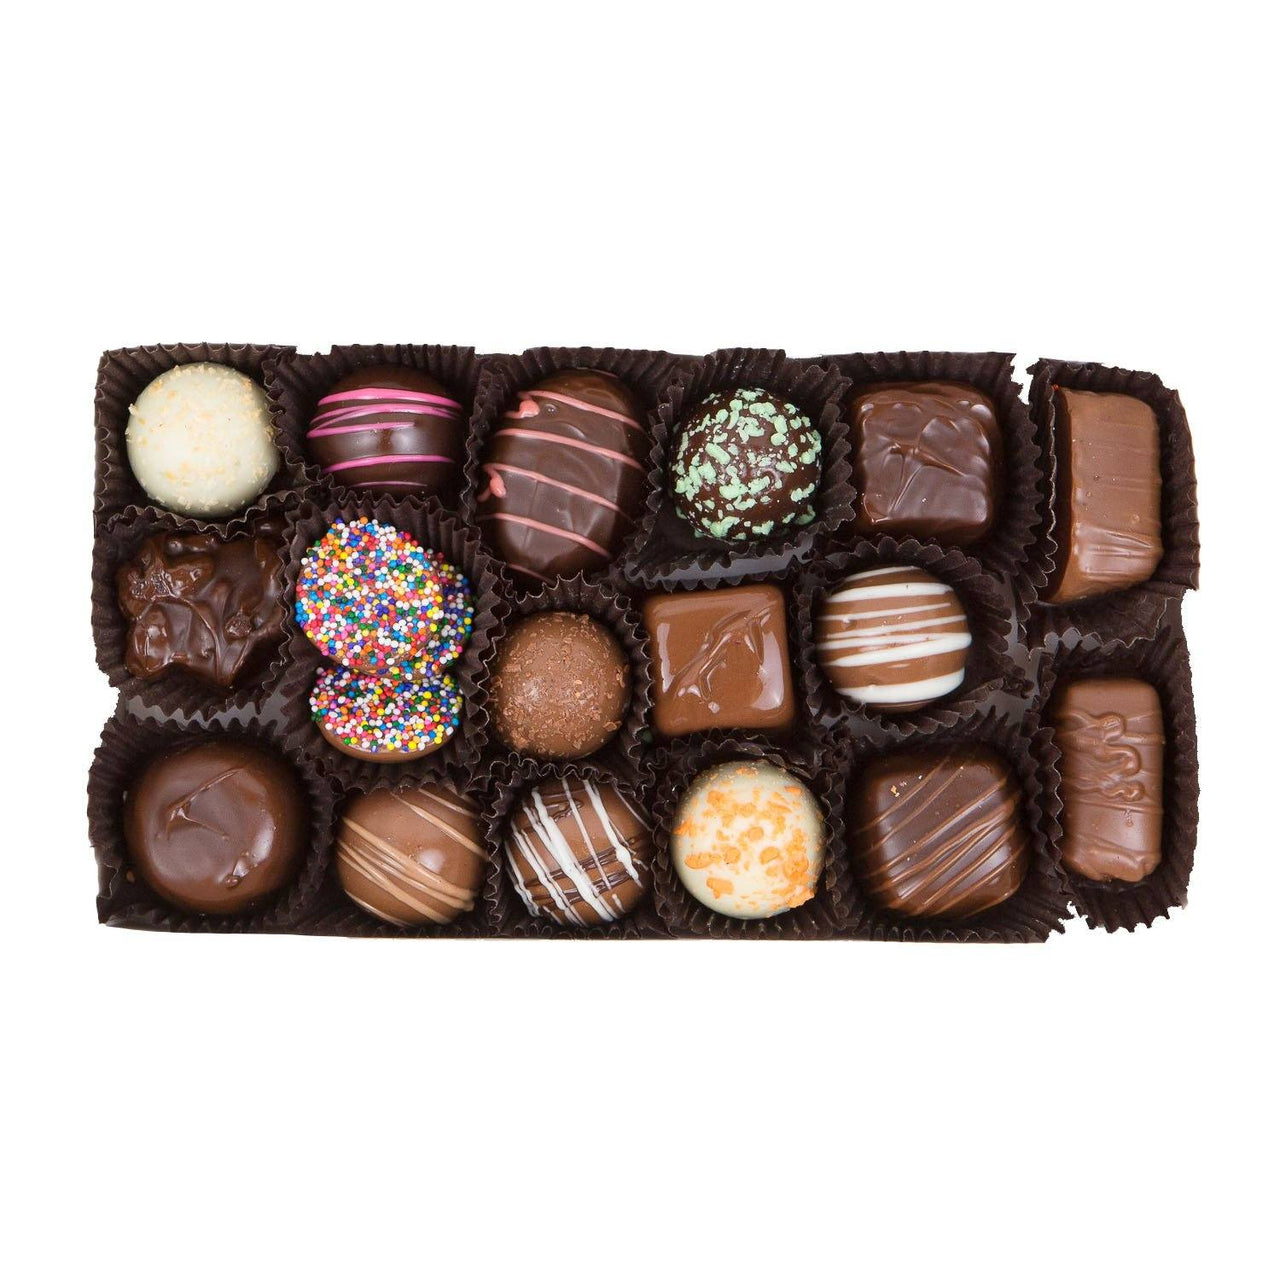 Gifts for Cousin - Assorted Chocolate Gift Box - Jackie's Chocolate